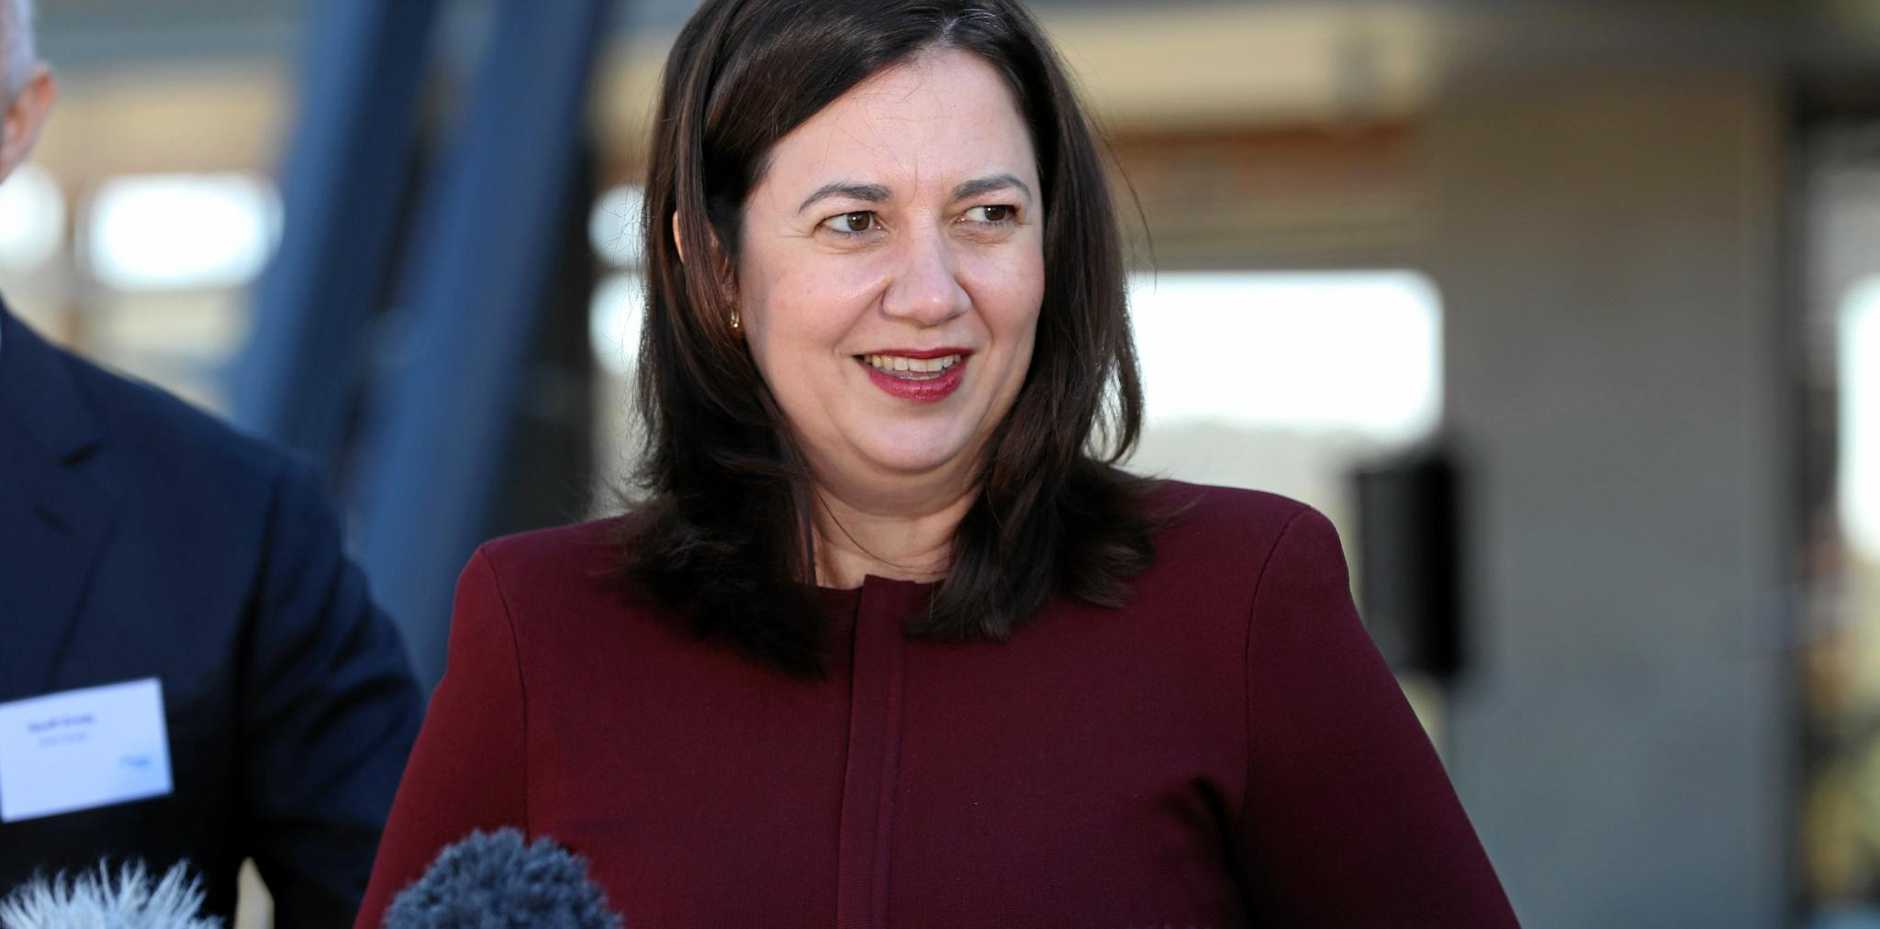 The Palaszczuk Government could have done better with the budget and ageing says in industry watchdog.